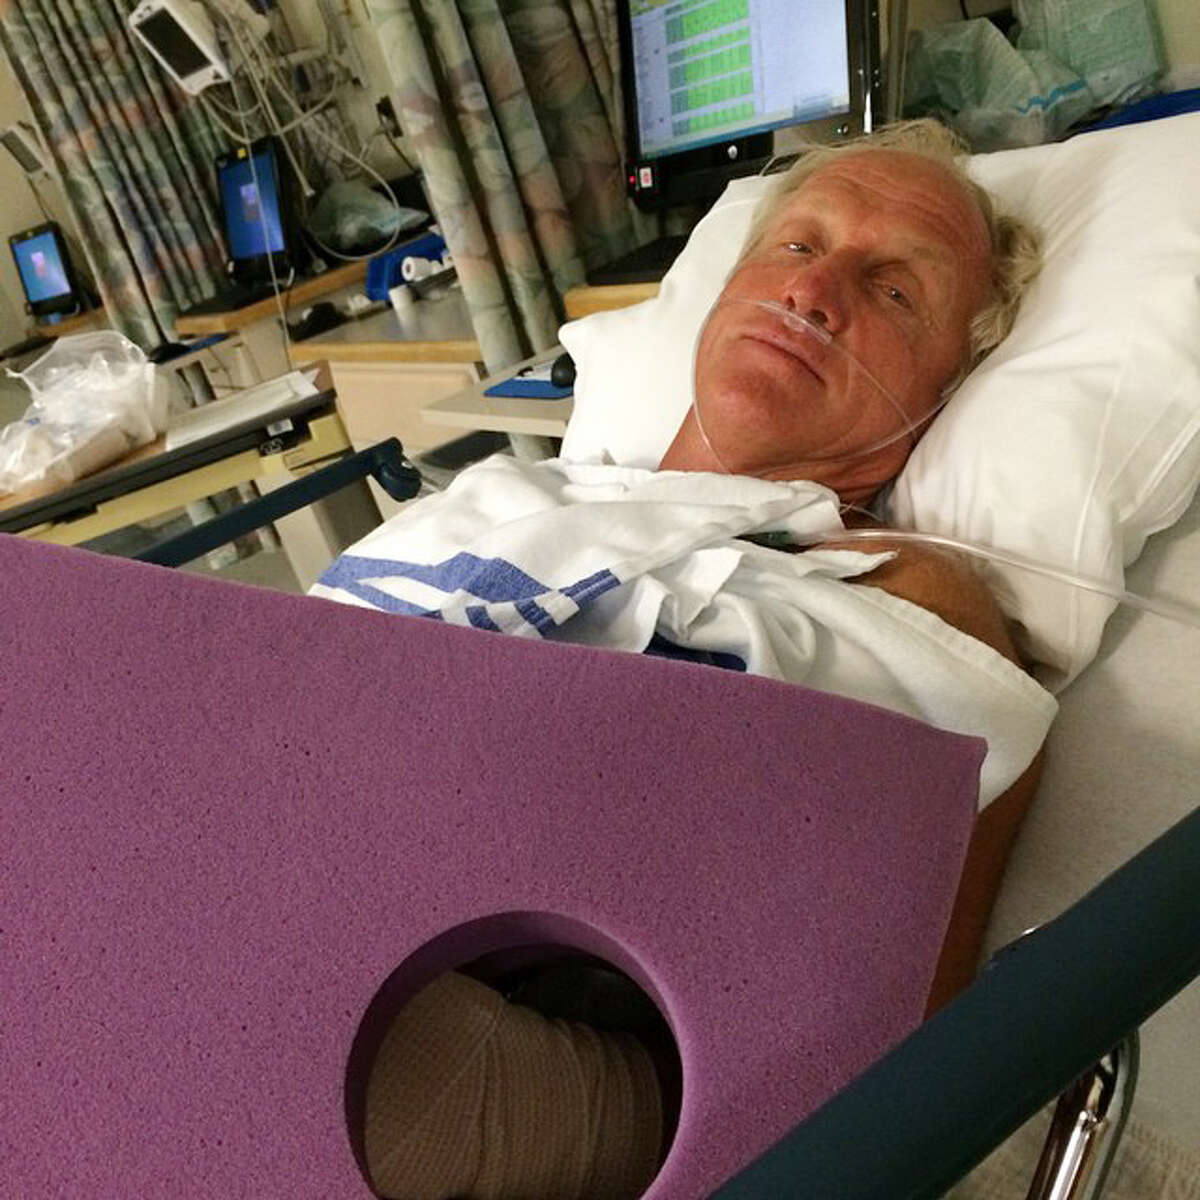 This photo provided by Greg Norman shows Norman resting in a hospital bed after a chainsaw accident.